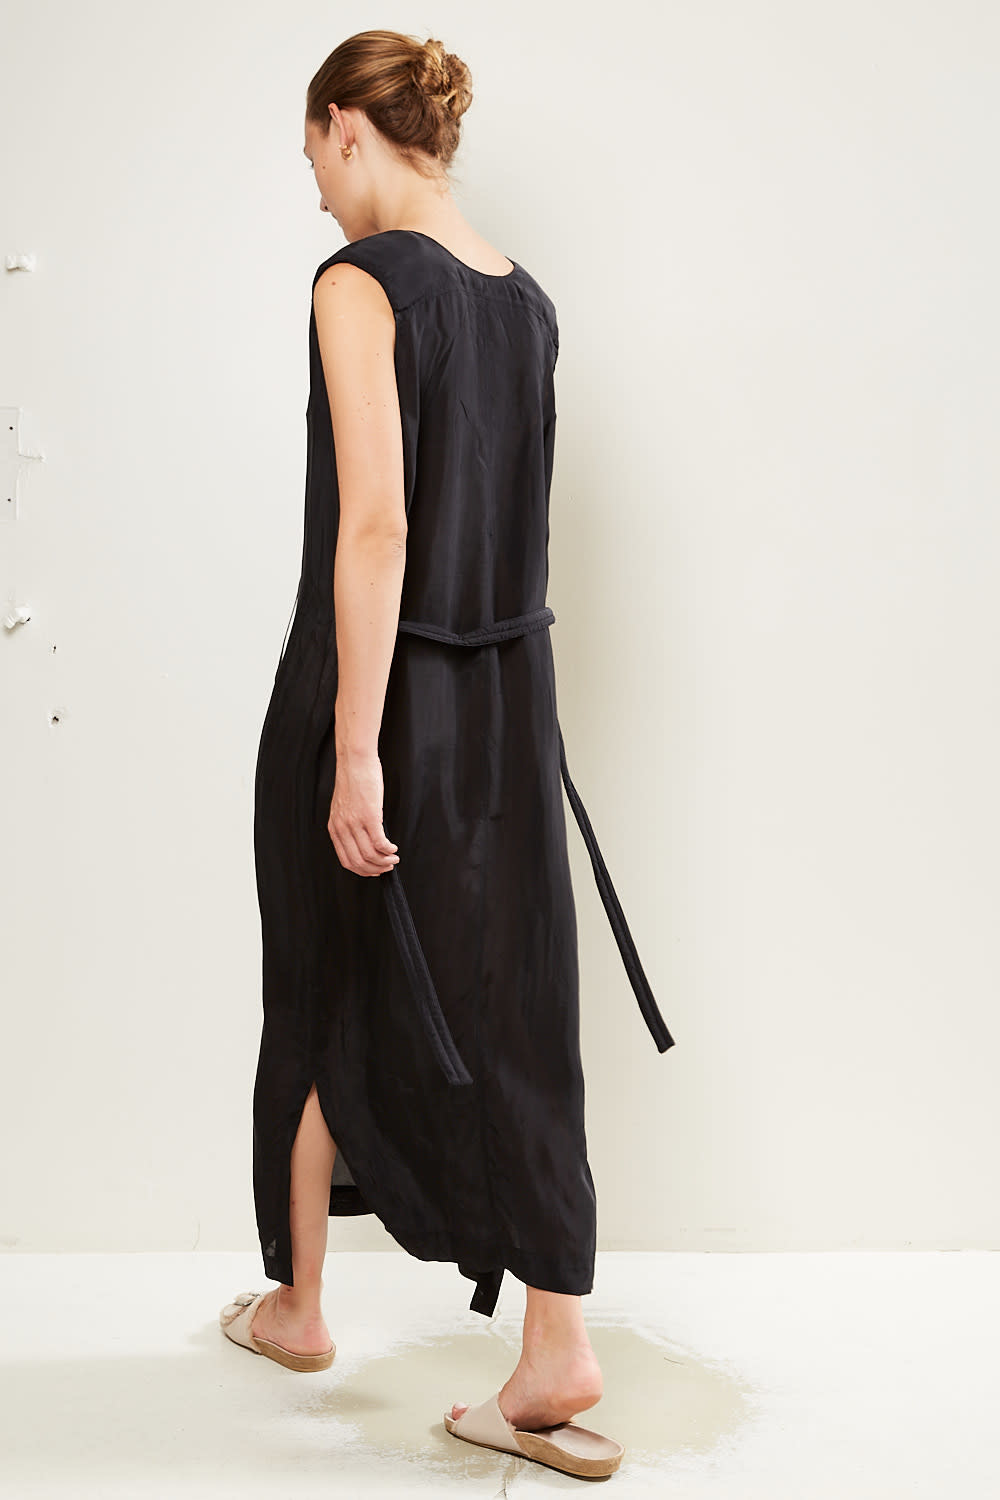 Humanoid - Nappah nuance dress